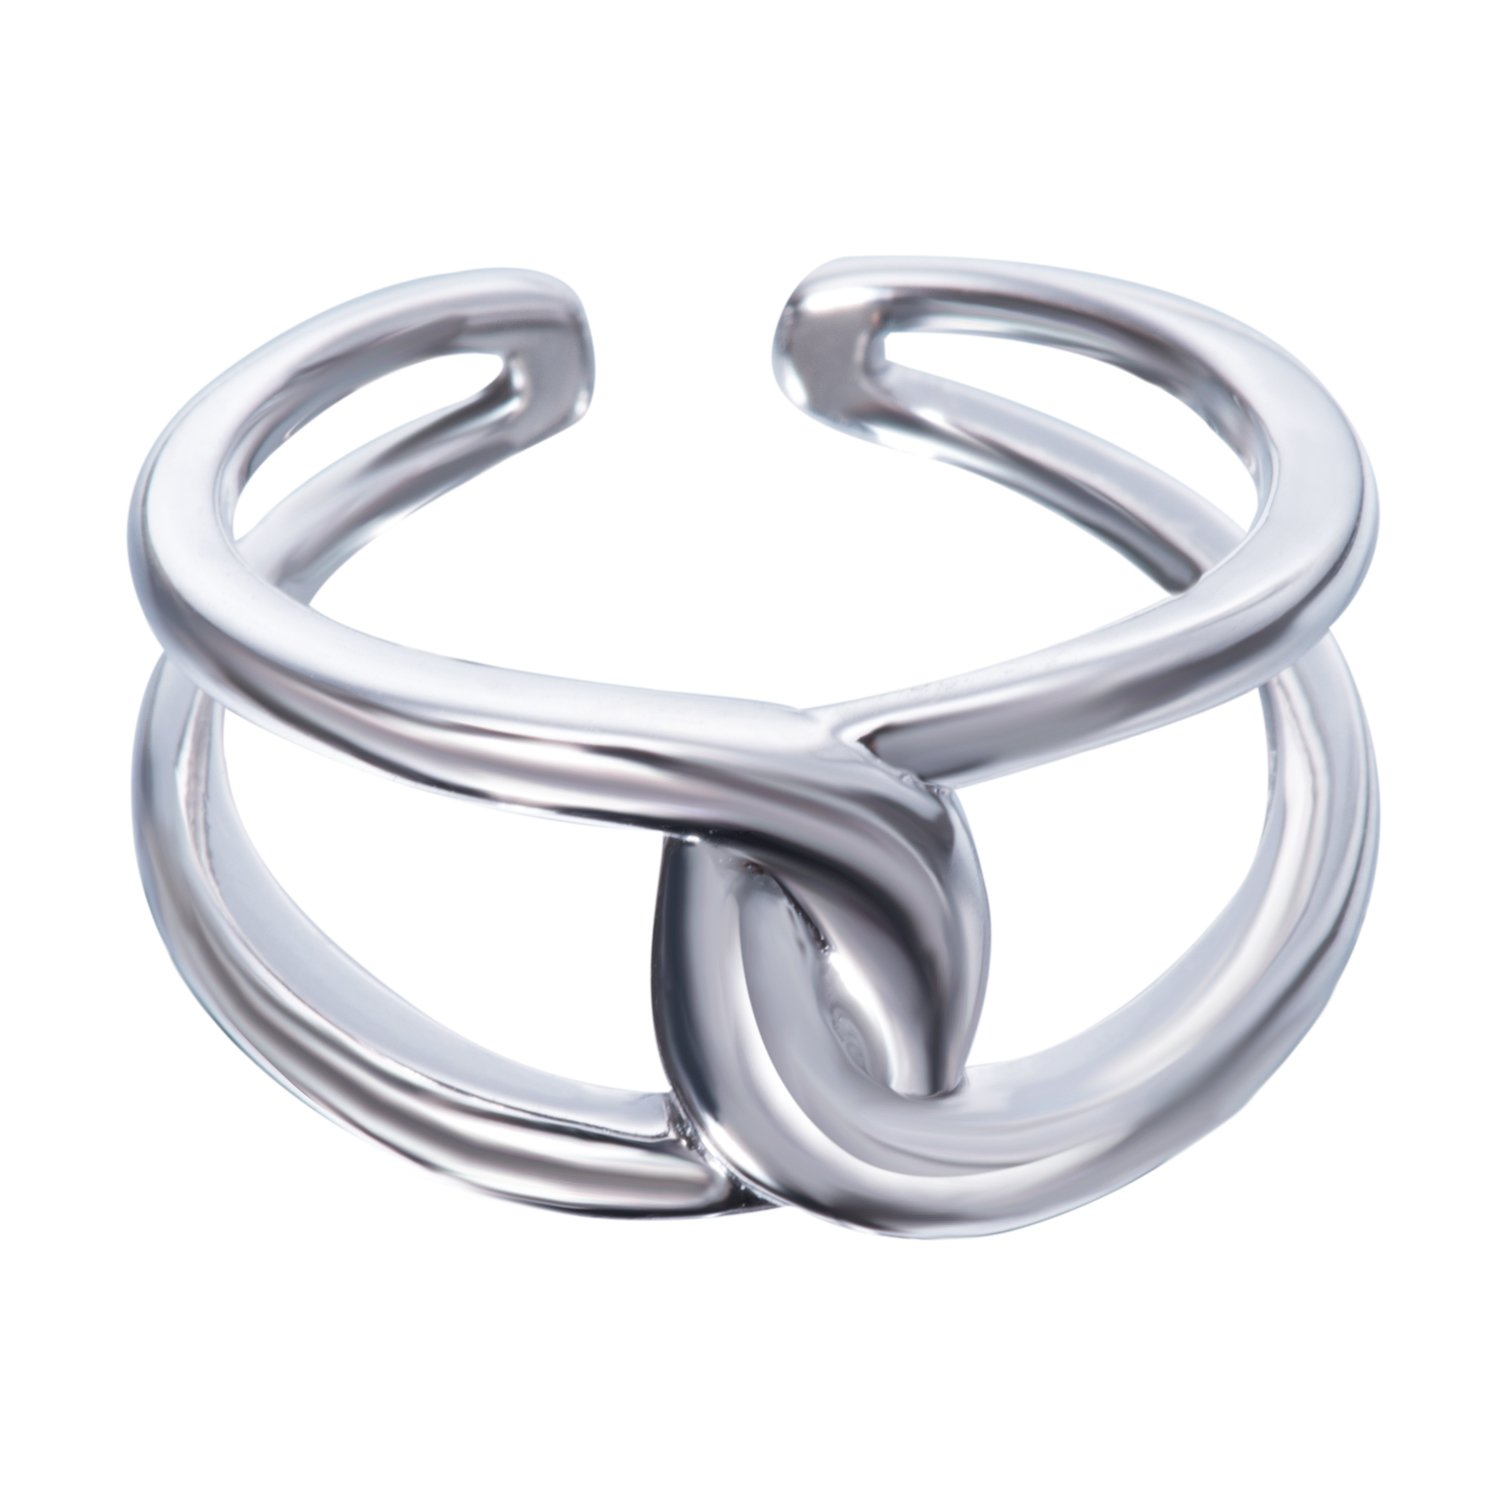 Fonsalette Gold Plated Infinity Ring Sterling Silver Open Twist Ring Two Band Ring (silver)